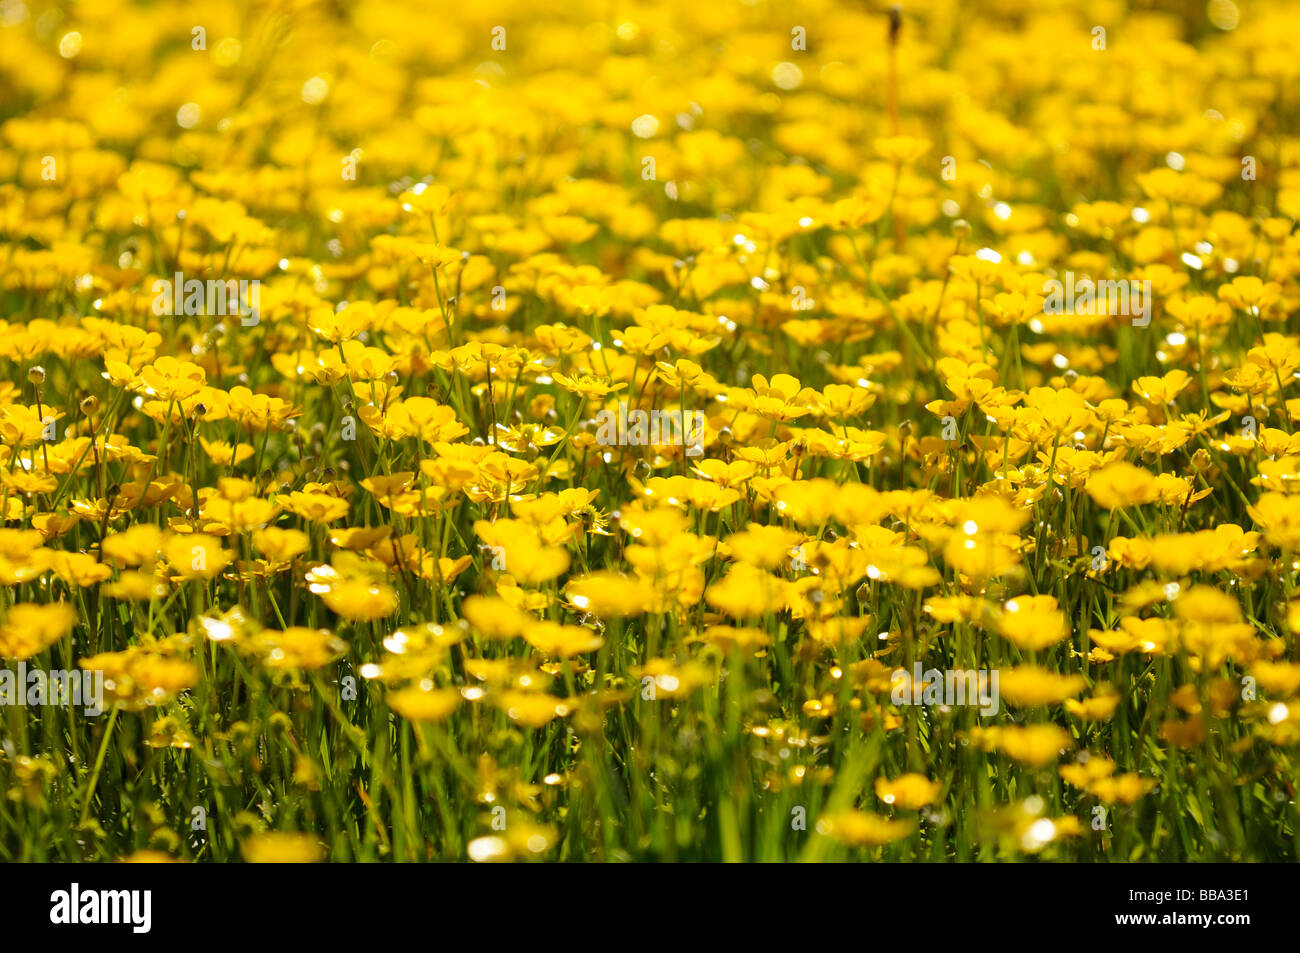 A close up shot of a large patch of yellow meadow buttercup flowers a close up shot of a large patch of yellow meadow buttercup flowers in field mightylinksfo